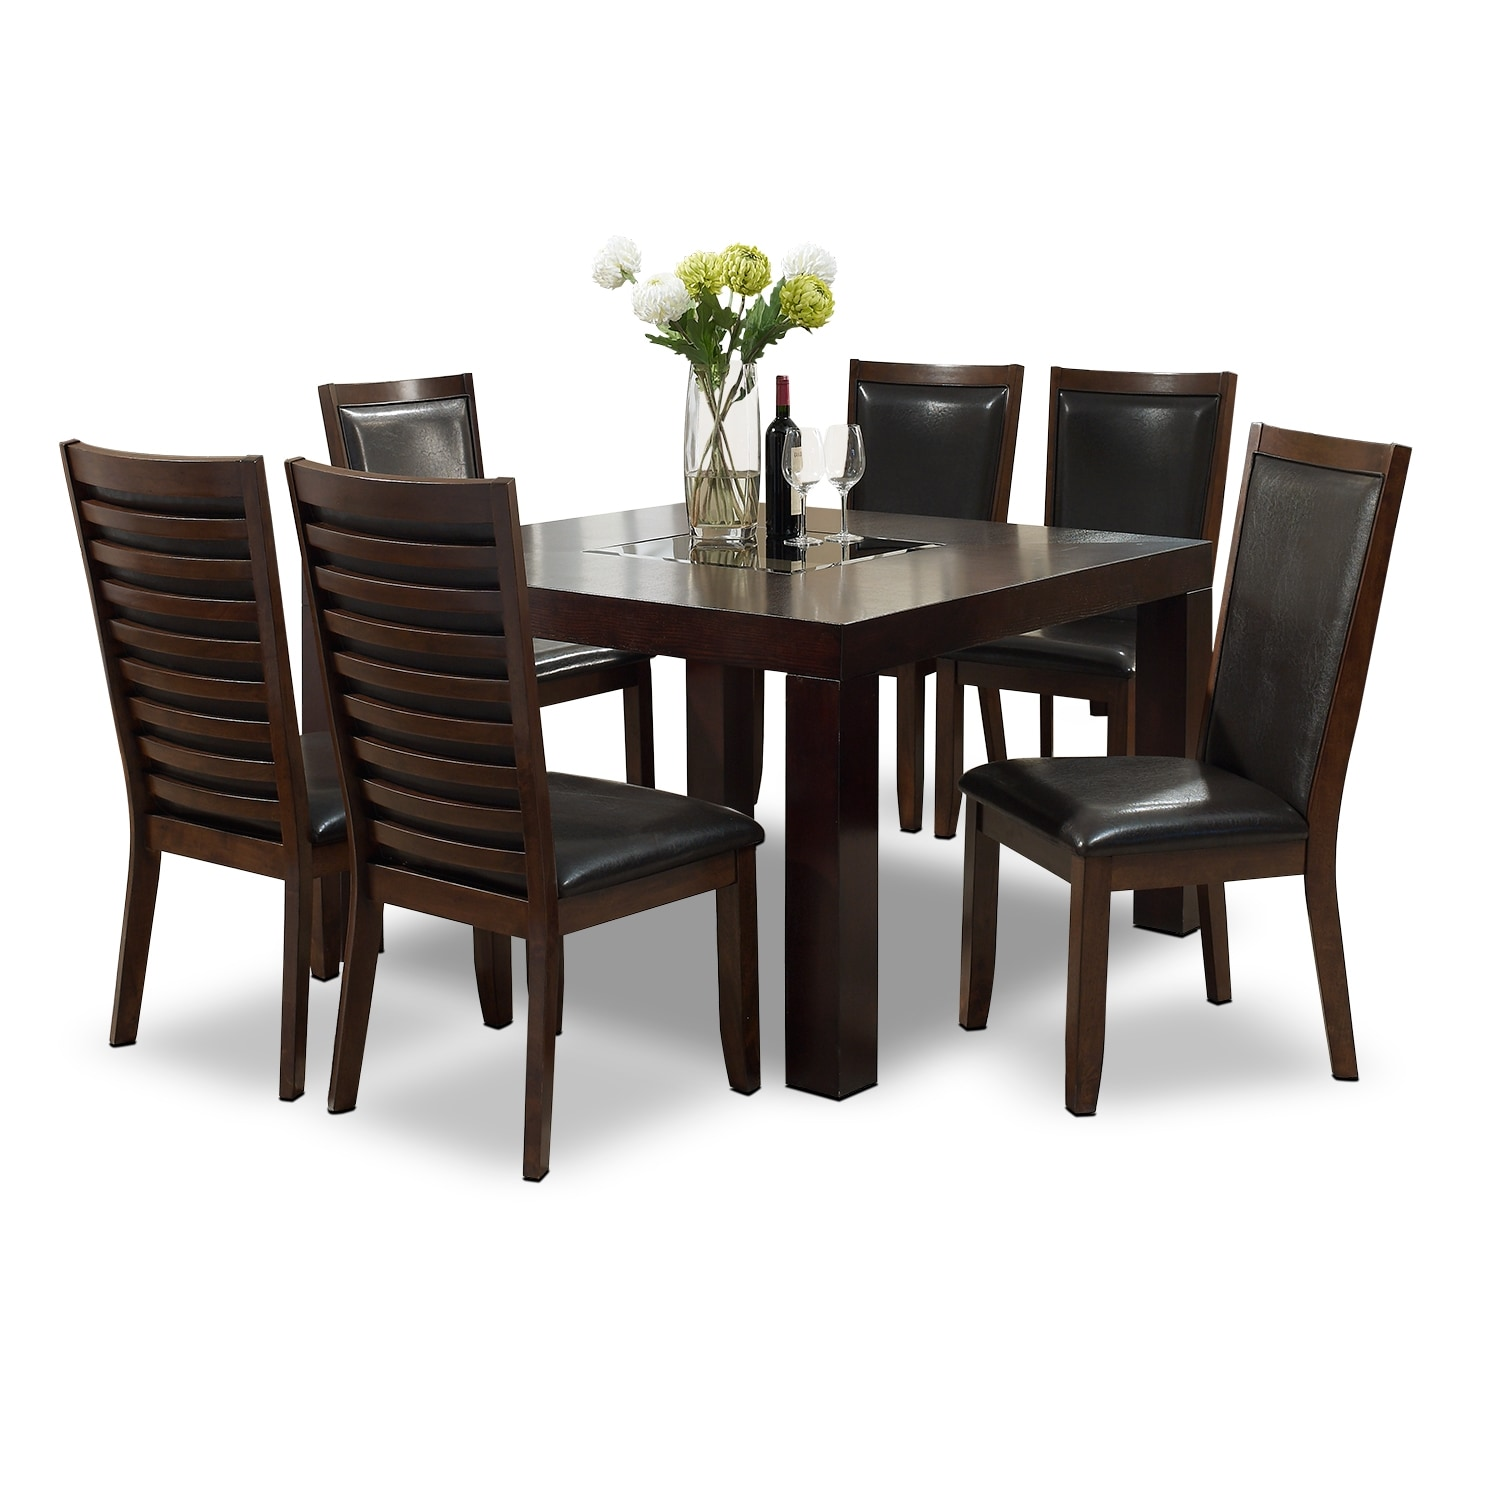 """[Tango Paragon II 7 Pc. Dinette with 50x50"""" Table - Merlot and Brown]"""